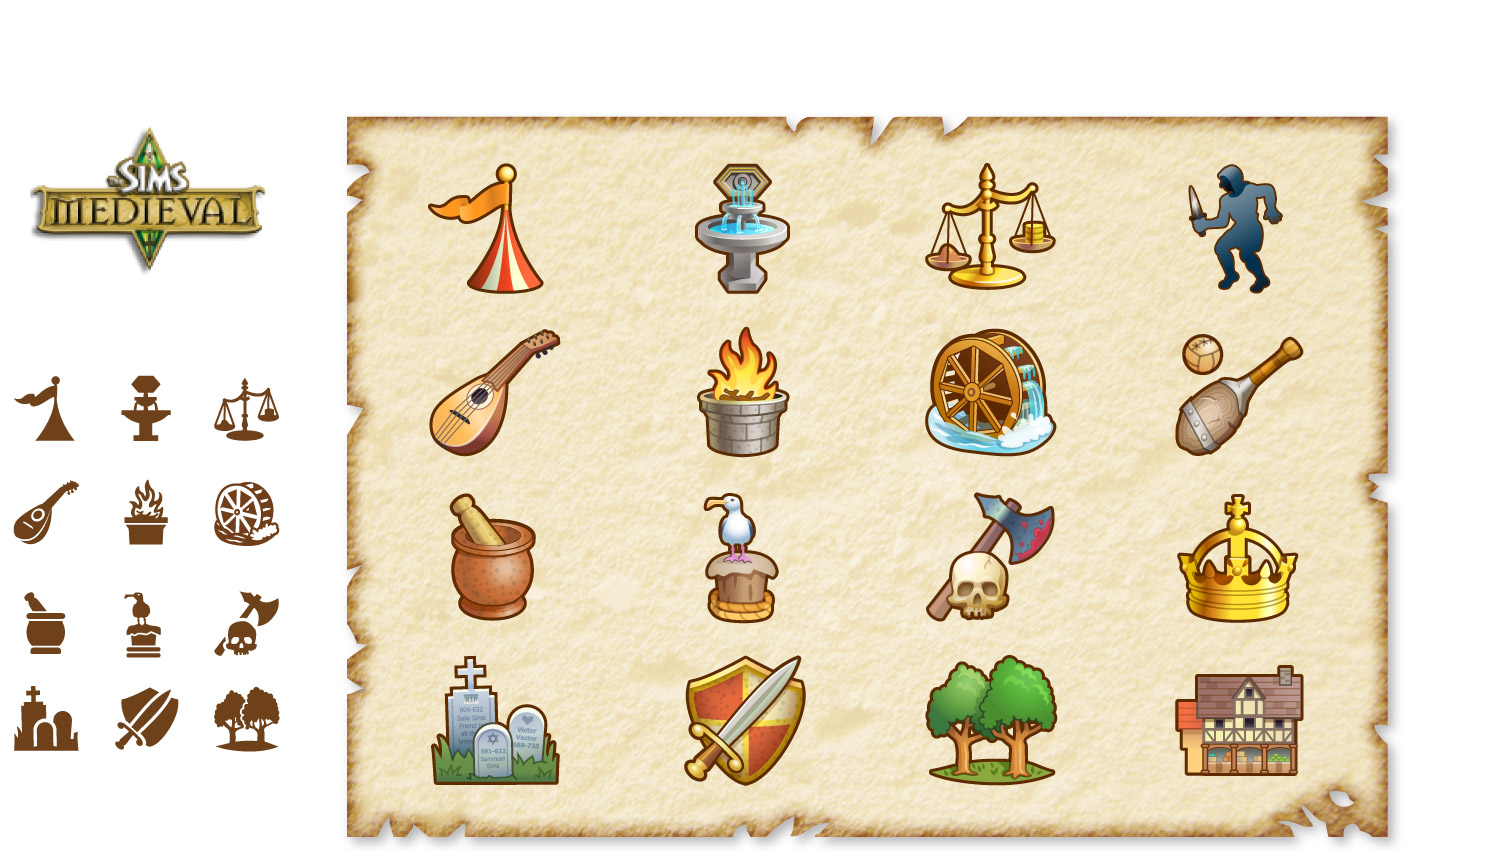 Icons for EA Games' Sims Medieval